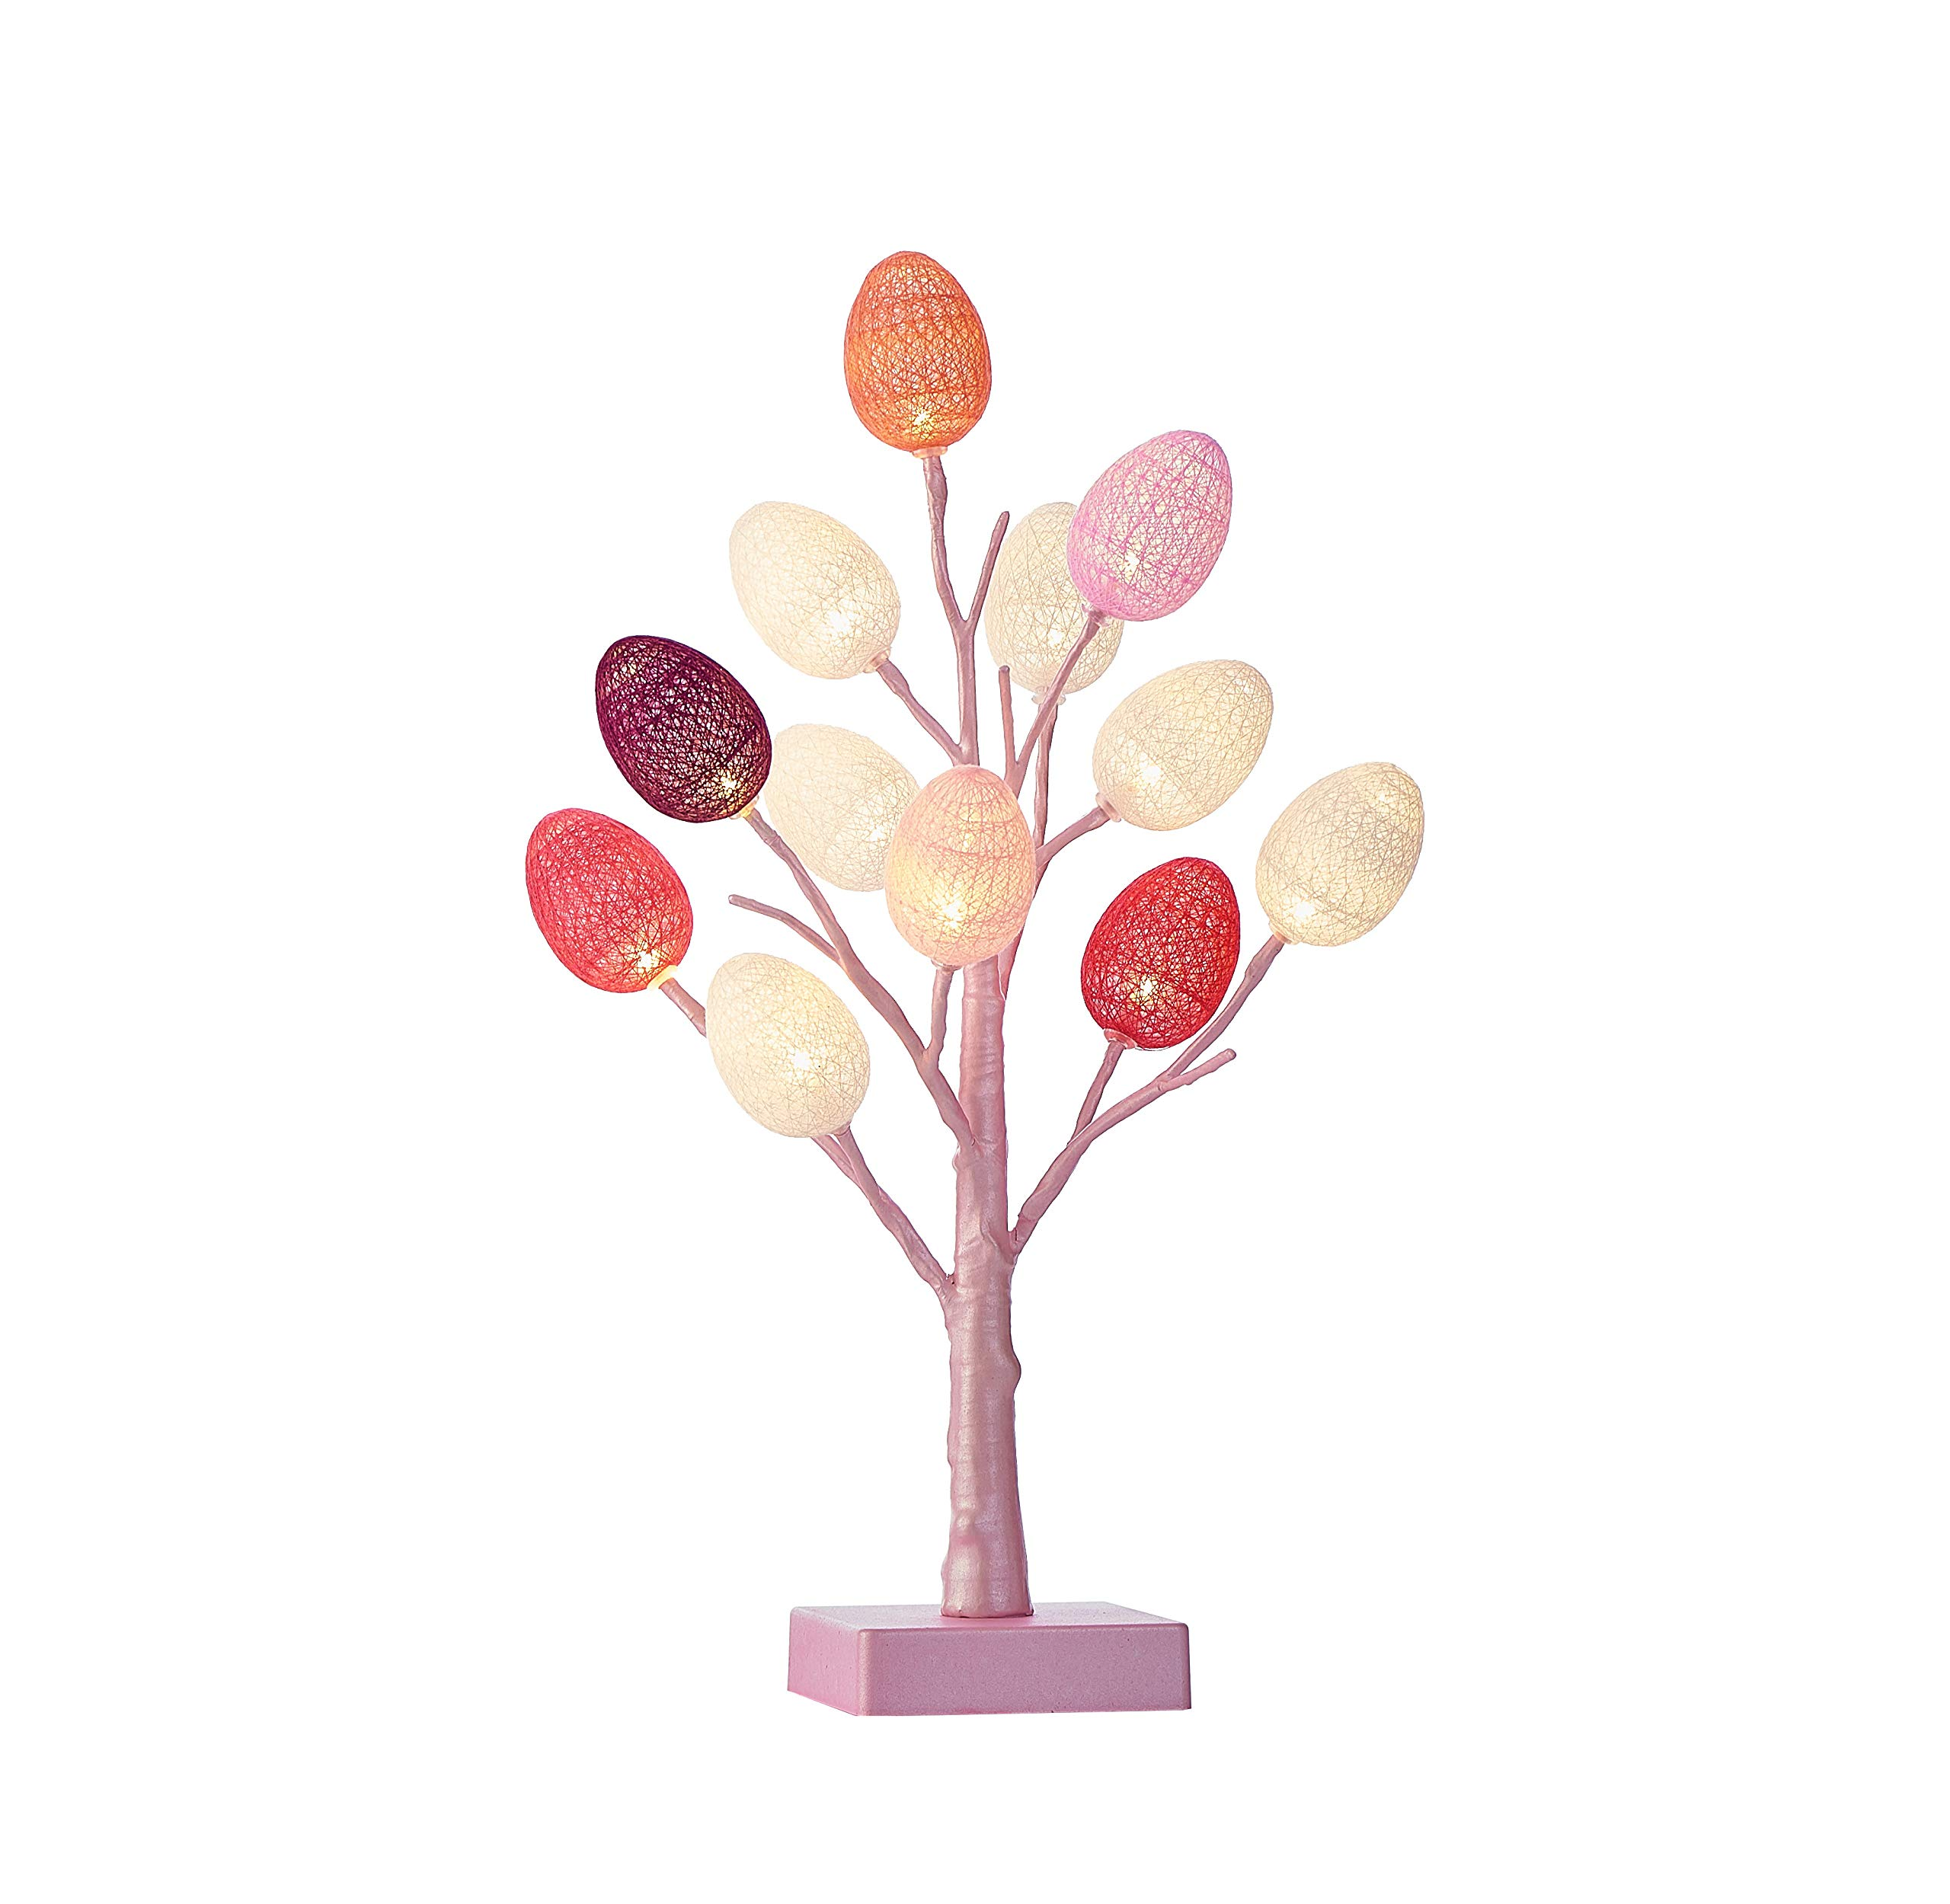 Hairui Pre Lit Easter Egg Tree 12LED 18IN Pastel Pink Tree with Multicolor Eggs, Cute Lighted Egg Tree for Childrens Room Office Decoration Battery Operated